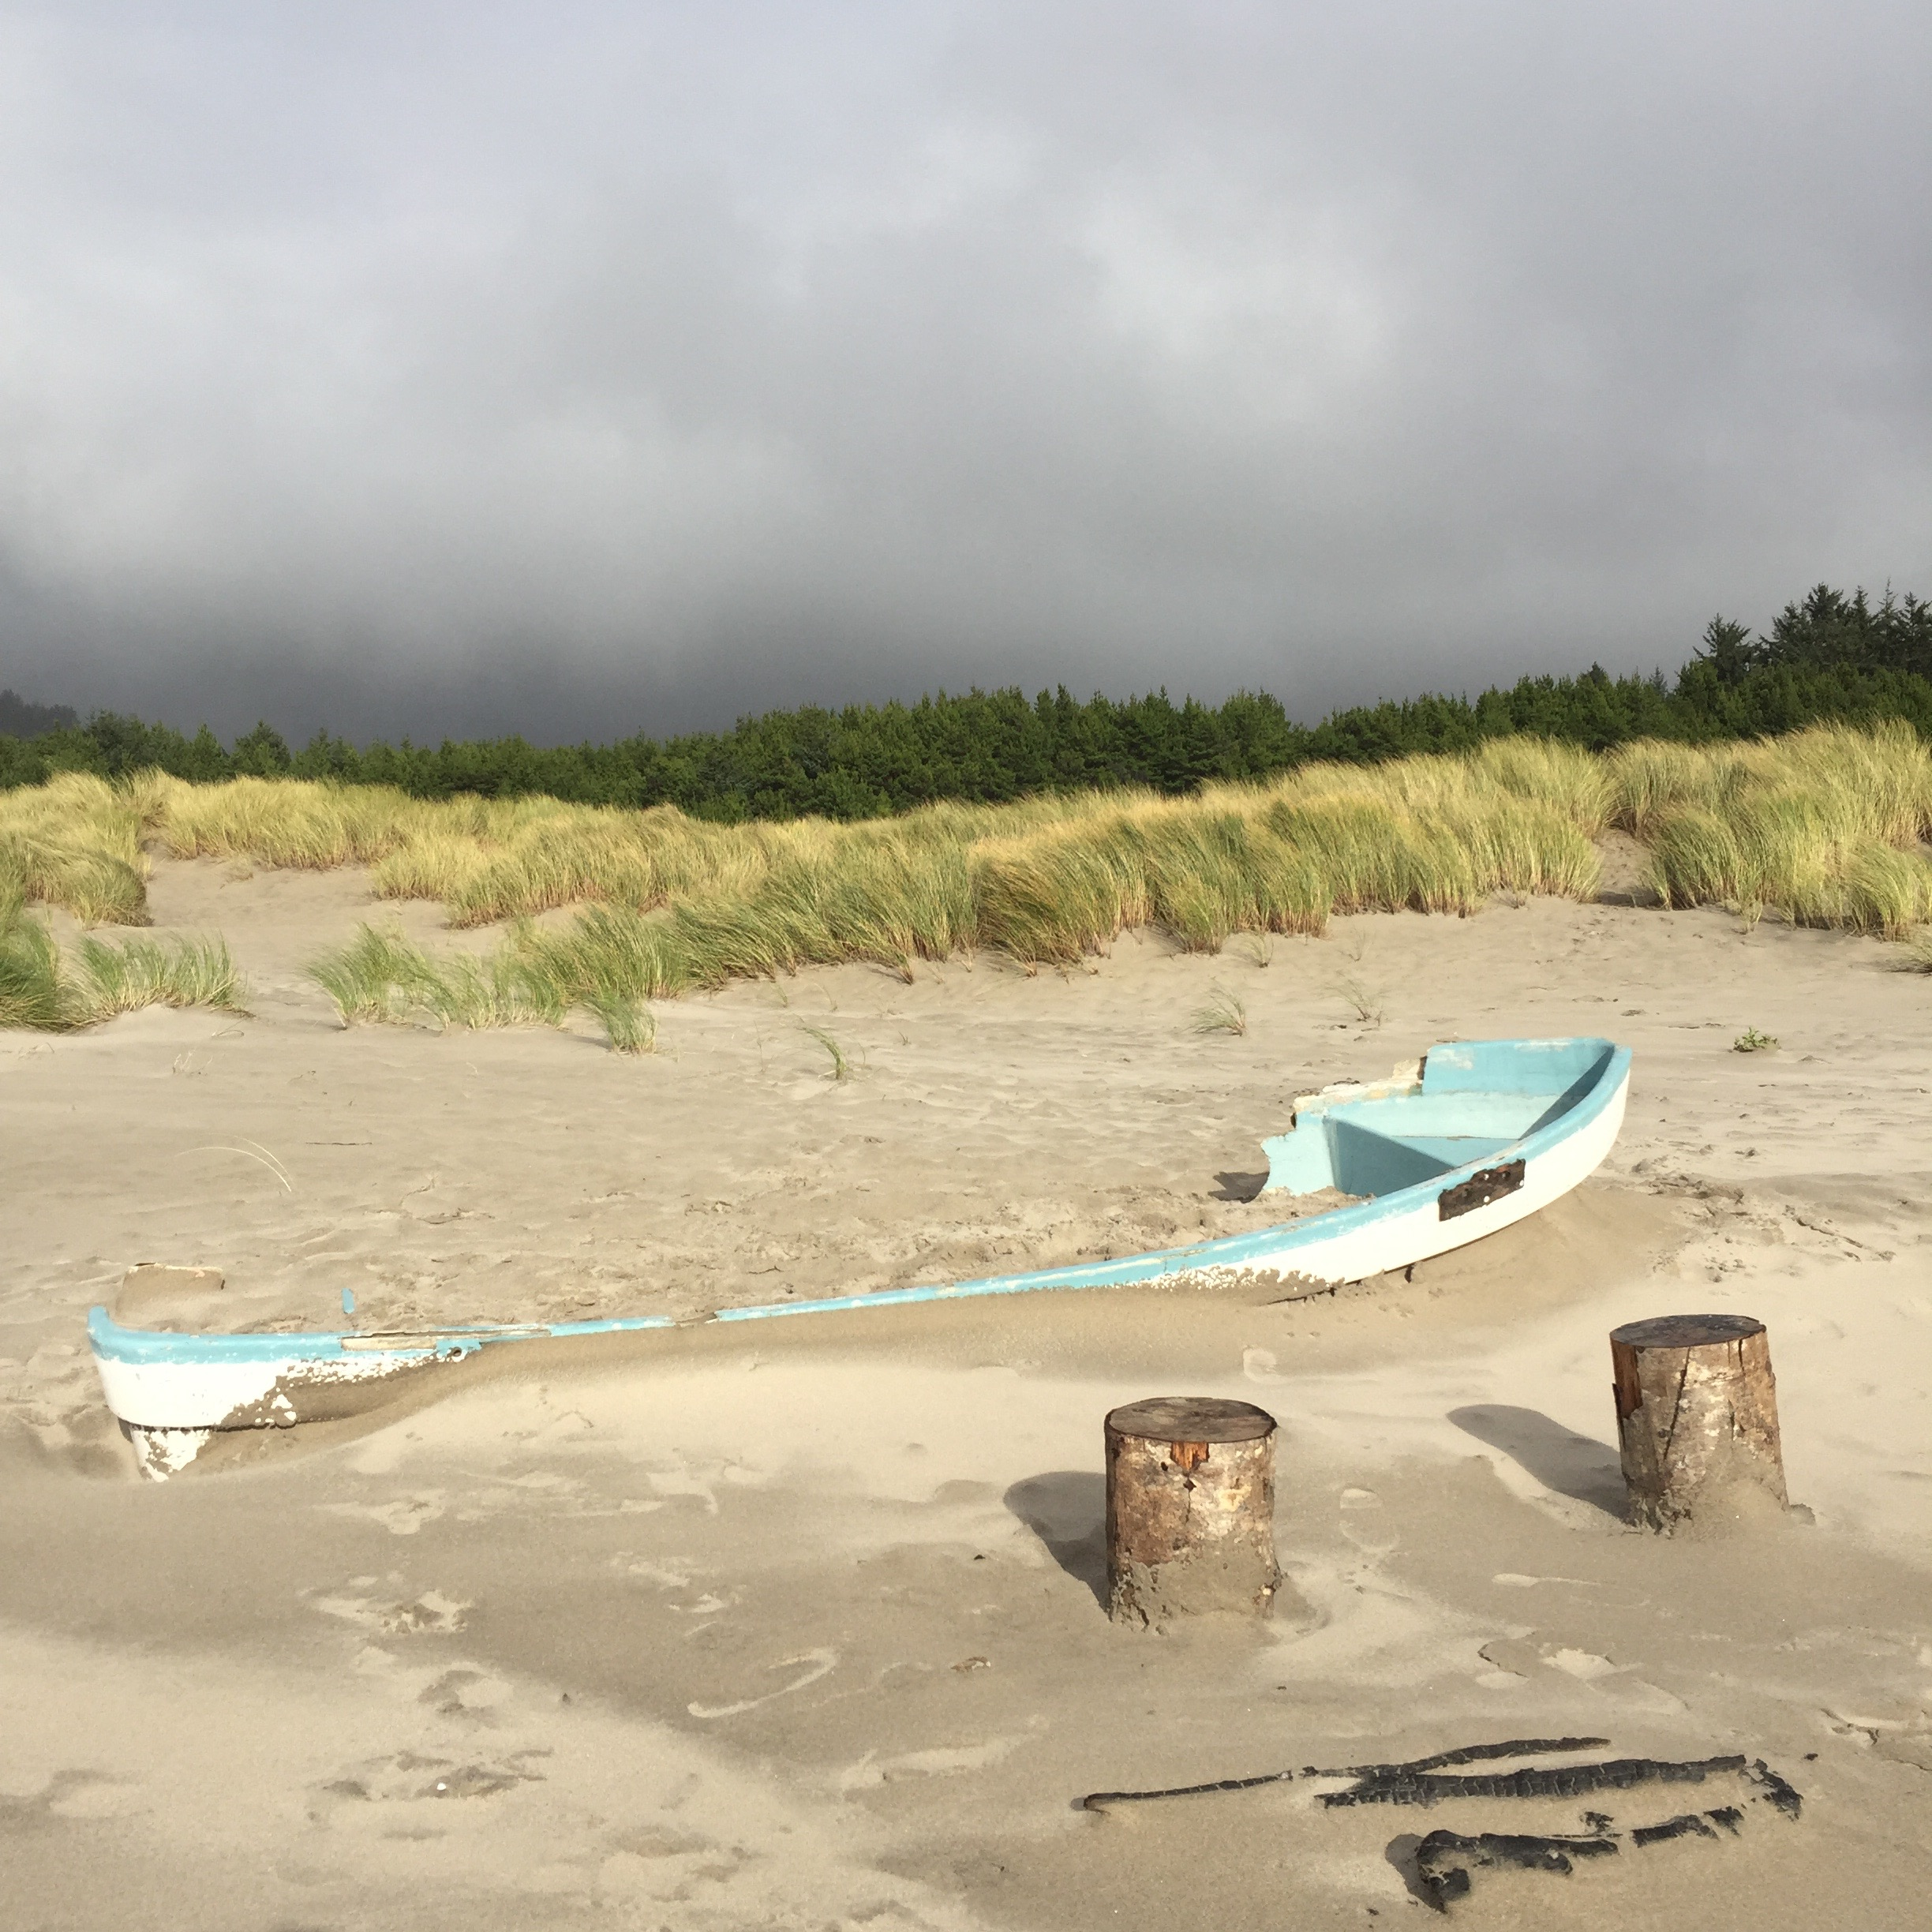 Japanese Tsunami Debris on the Oregon Coast